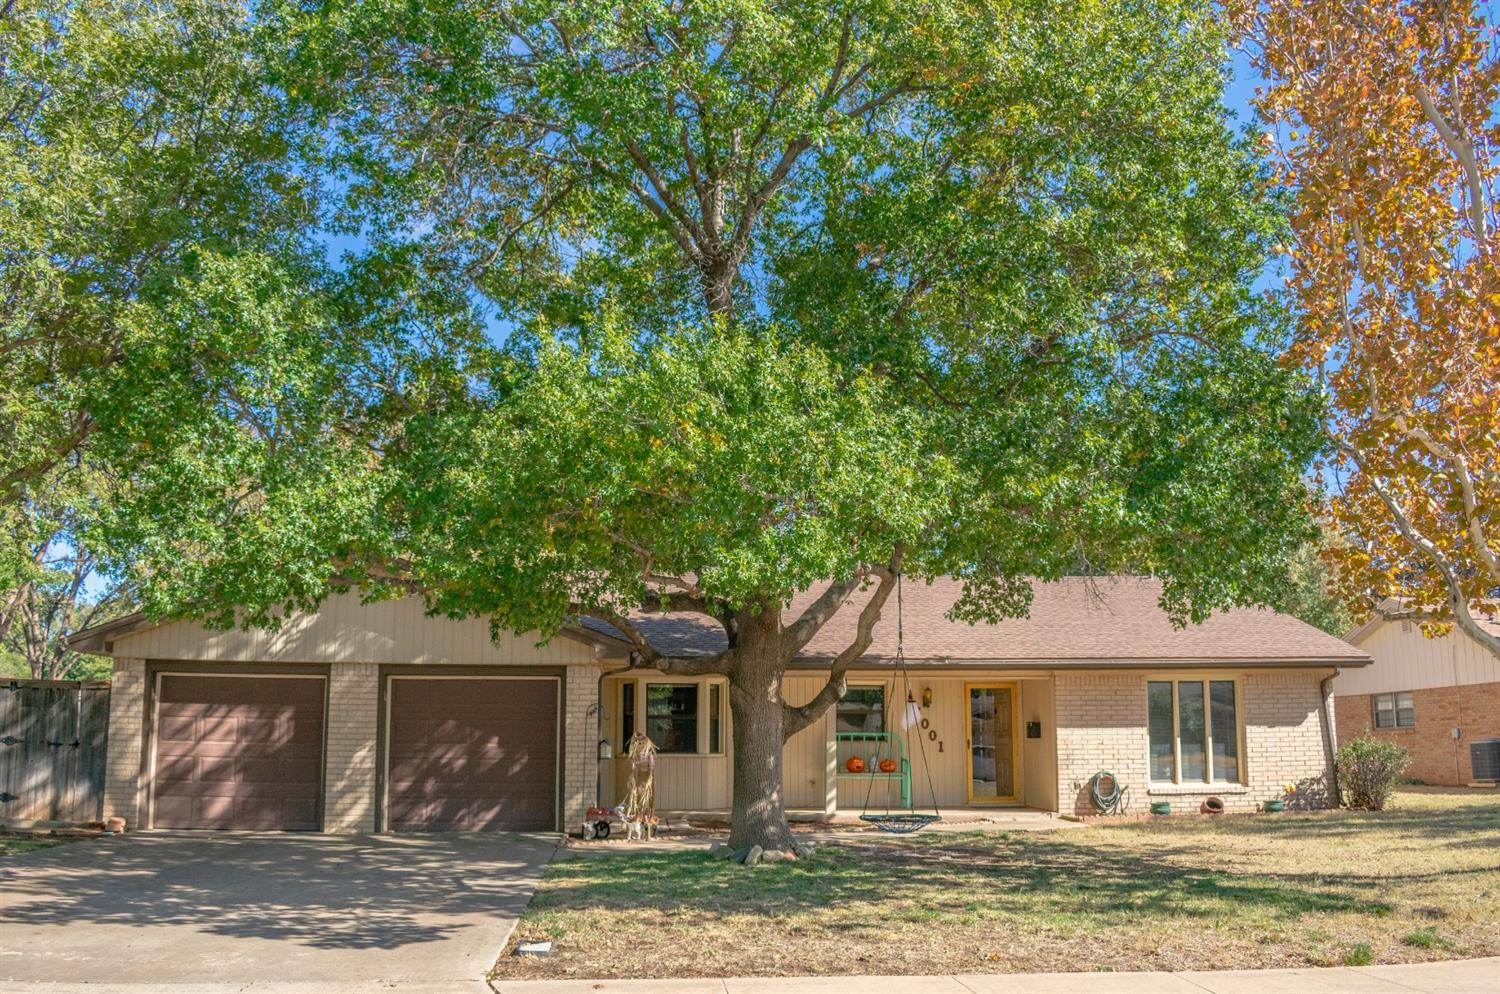 This is your chance to live on this beautiful tree lined cul-de-sac in Melonie Park! Just a short walk to one of Lubbock's finest elementary schools, Miller Elementary! Owners thought they would live here for years so they recently invested thousands of dollars in energy saving Solar Panels. Their loss is your gain.  High Cathedral Ceiling in  Living Area, Isolated Master Suite, Sunroom, Spacious Kitchen and Dining and so much more! Offered at just 197,900 this one is sure to sell quickly!!! Call your favorite REALTOR to see it today.